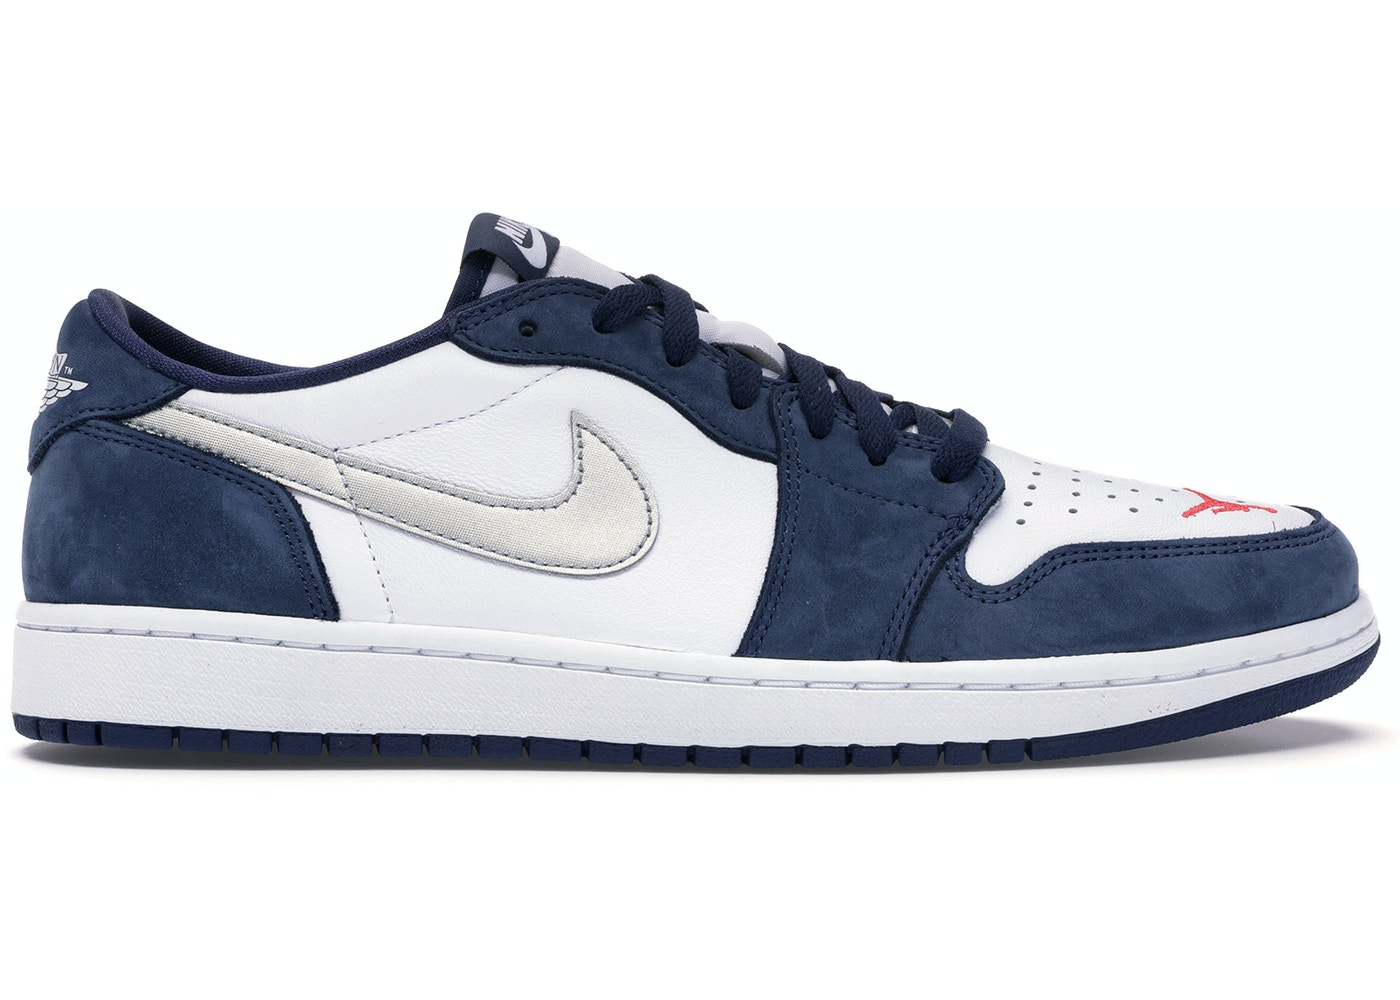 outlet store e03c3 bdb80 Jordan 1 Low SB Midnight Navy